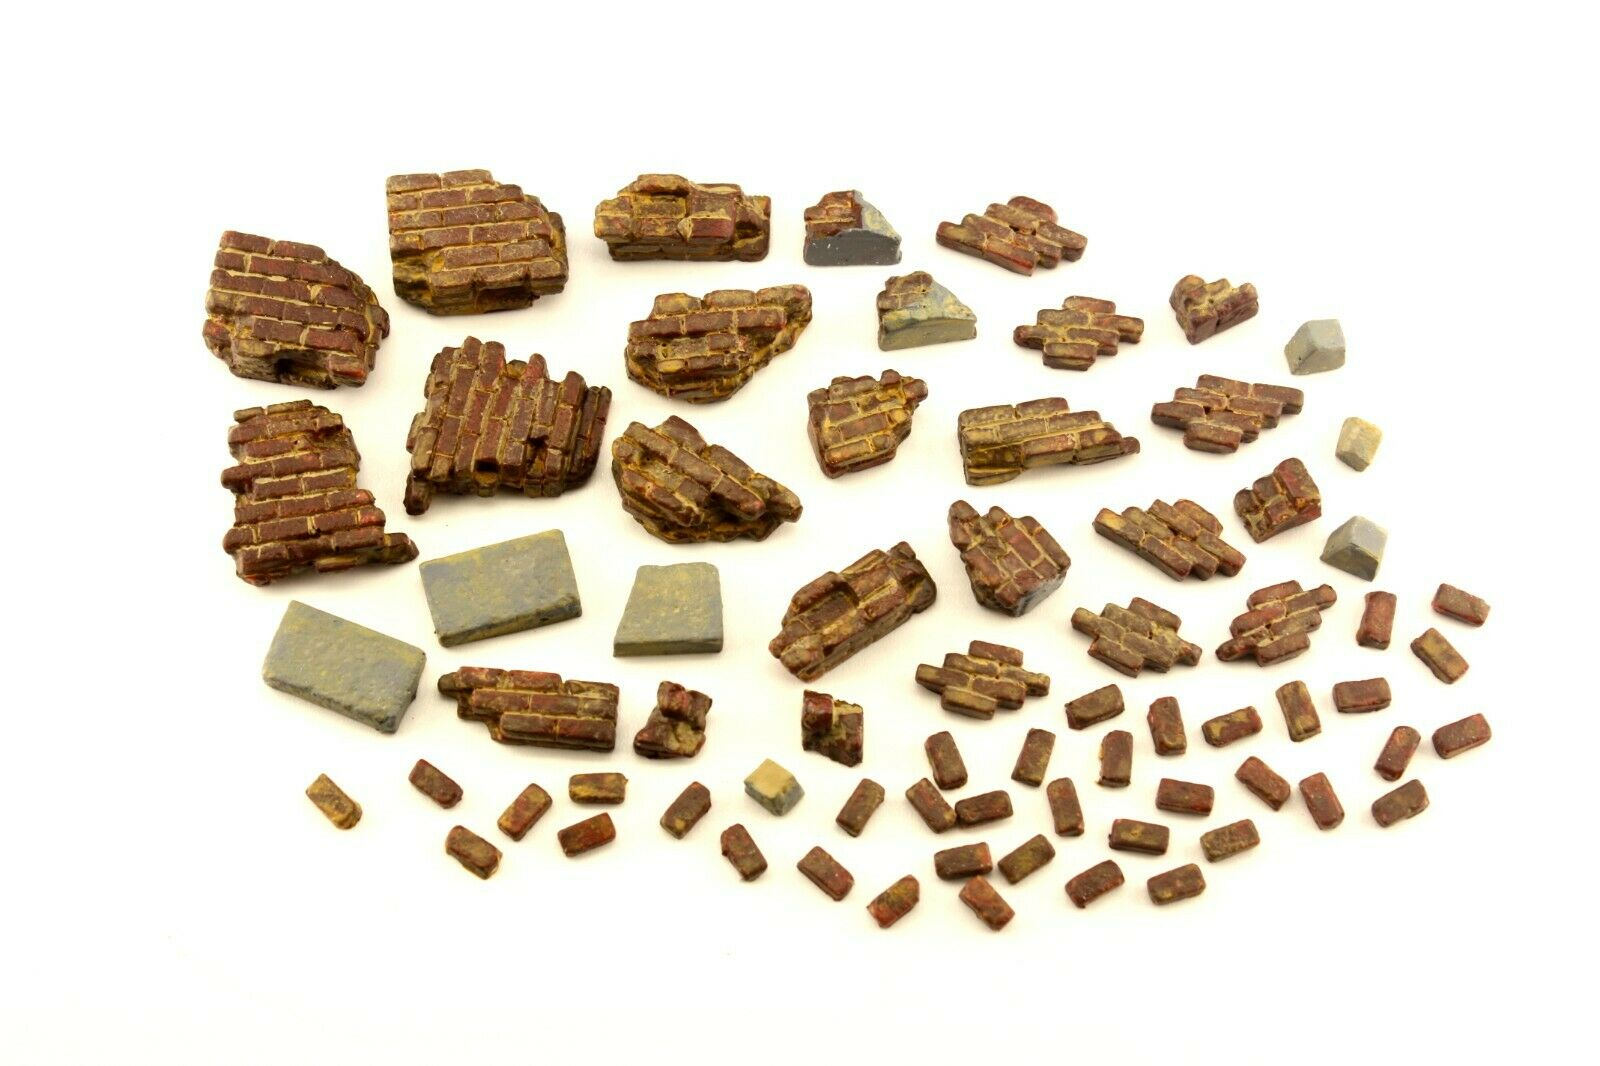 Redog 1:35 Resin Rubble Pile  Dioramas & Scale Modeling - redoguk